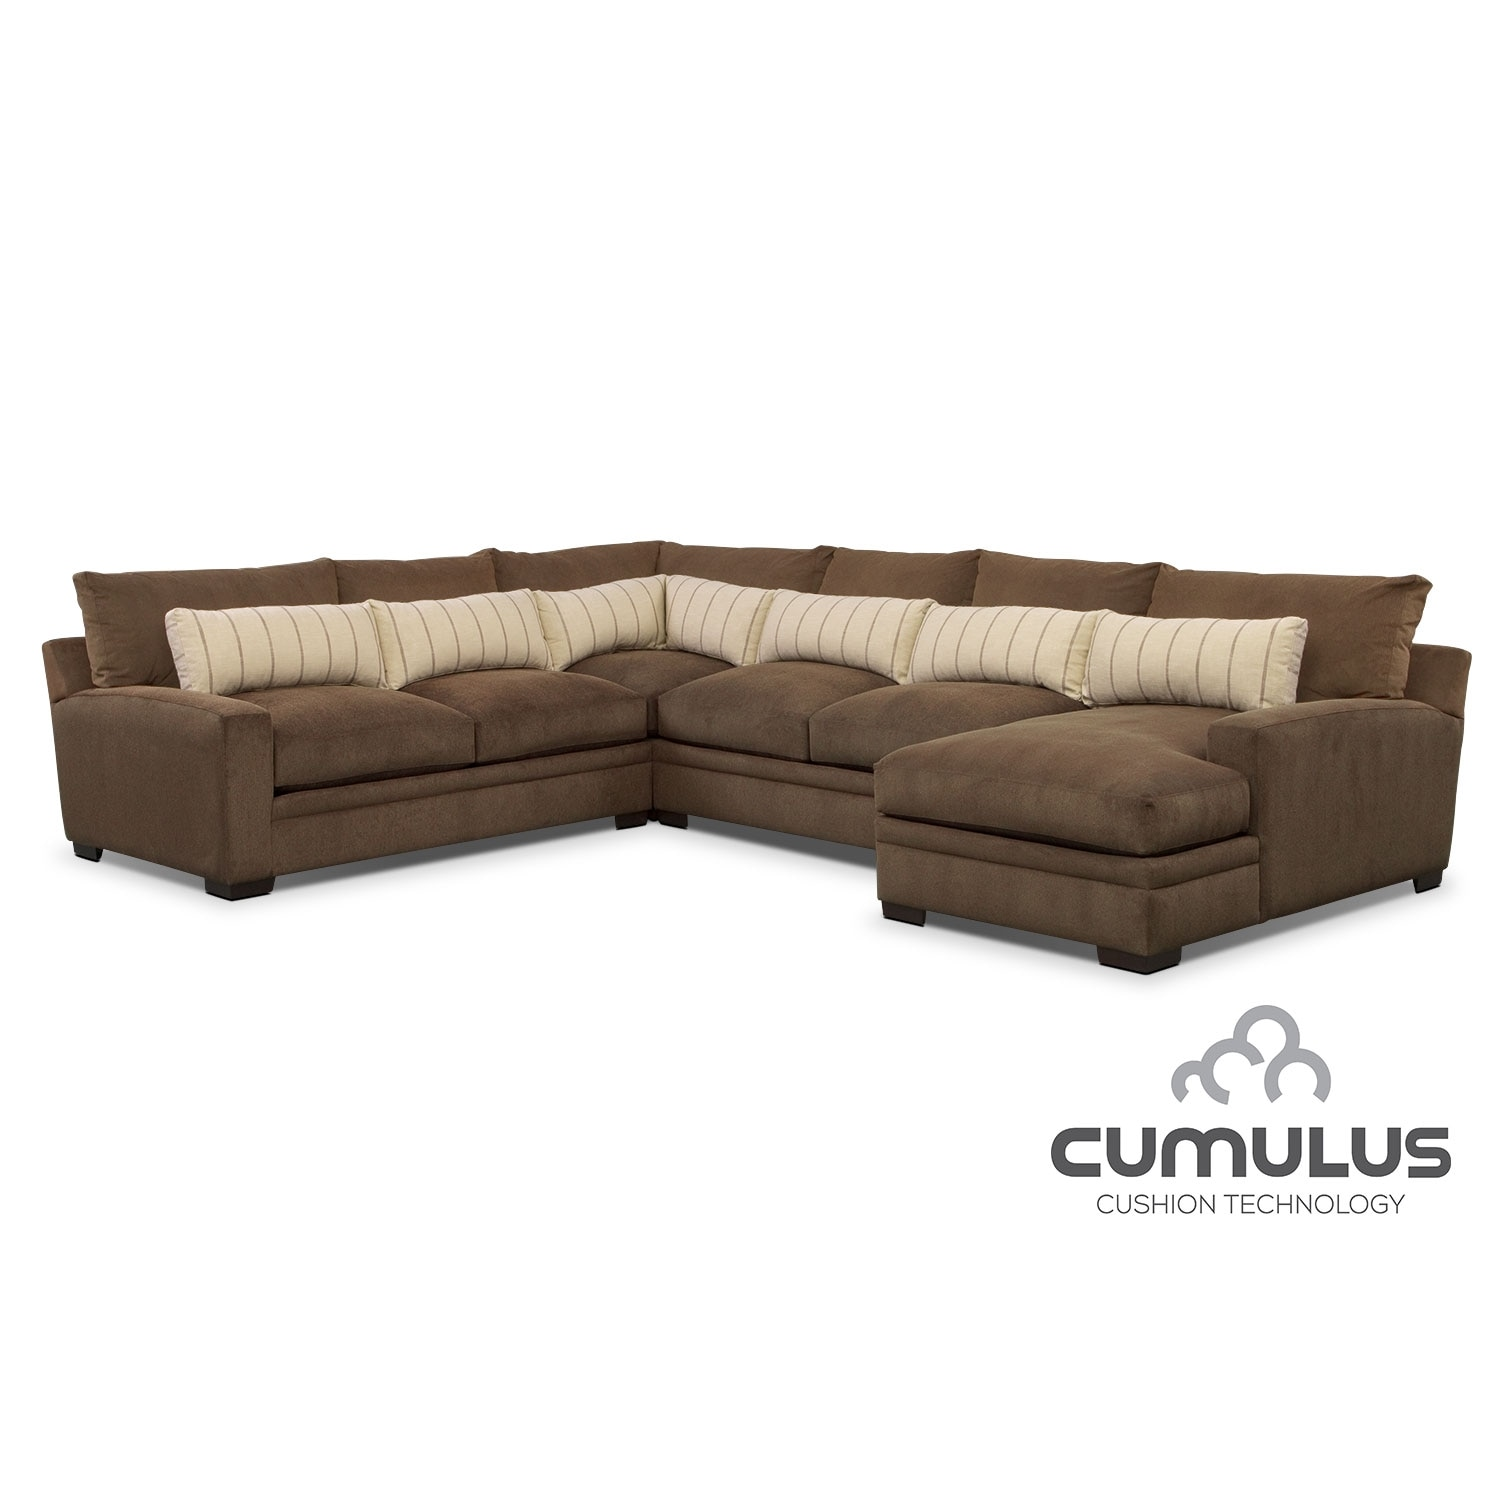 Ventura 4-Piece Sectional with Right-Facing Chaise - Brown